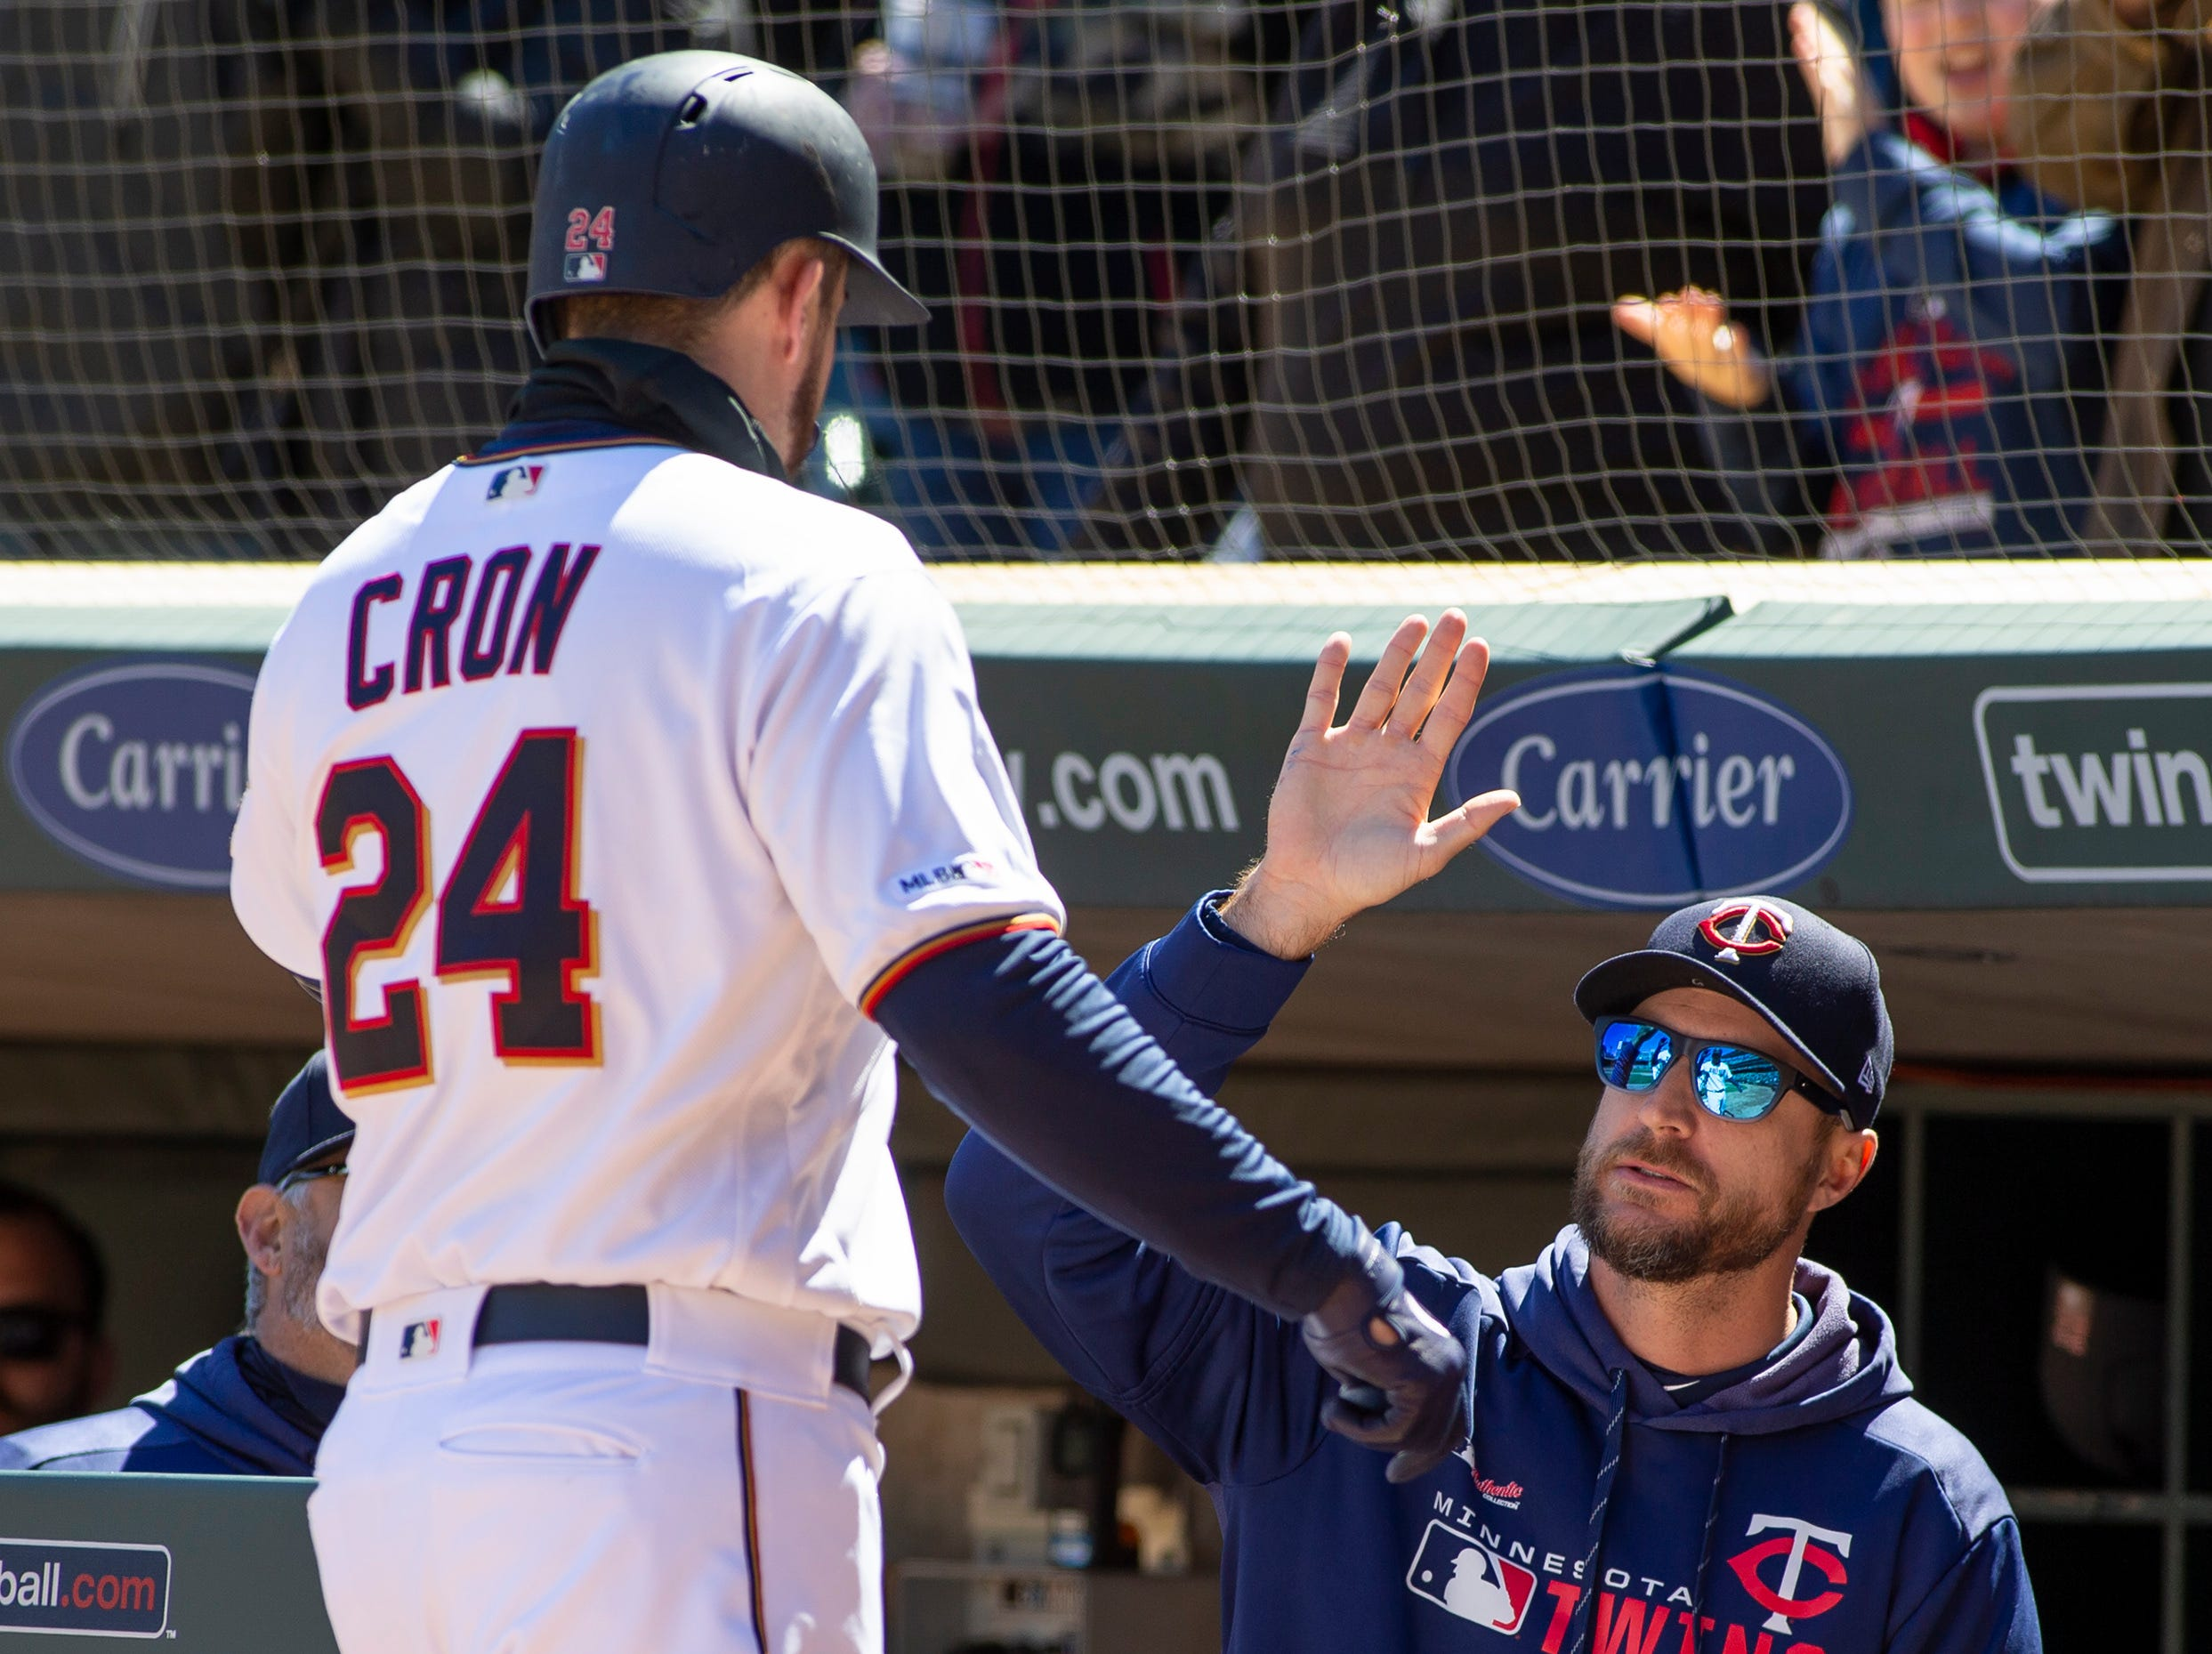 Minnesota Twins' C.J. Cron (24) is congratulated by manager Rocco Baldelli (5) after hitting a two-run home run during the third inning.